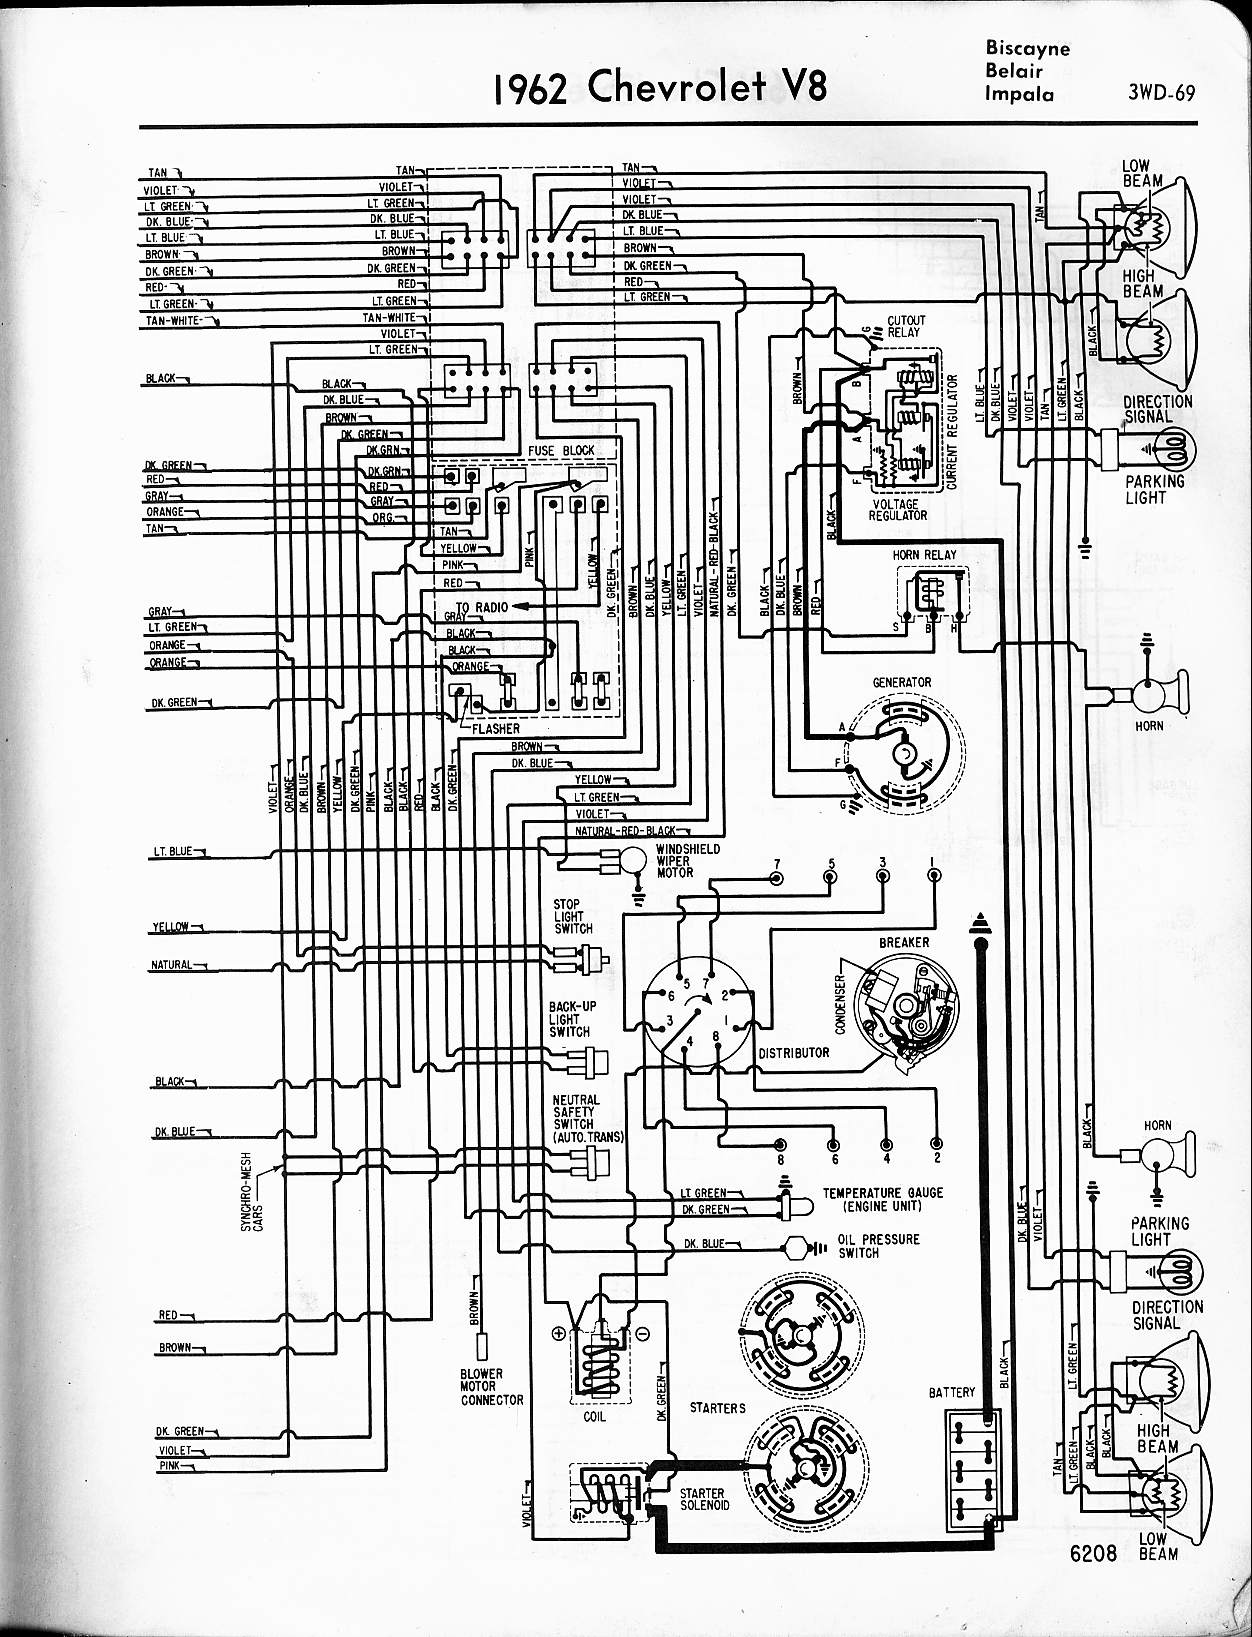 57 chevy bel air wiring diagram 1963 bel air wiring diagram | better wiring diagram online 65 bel air wire diagram